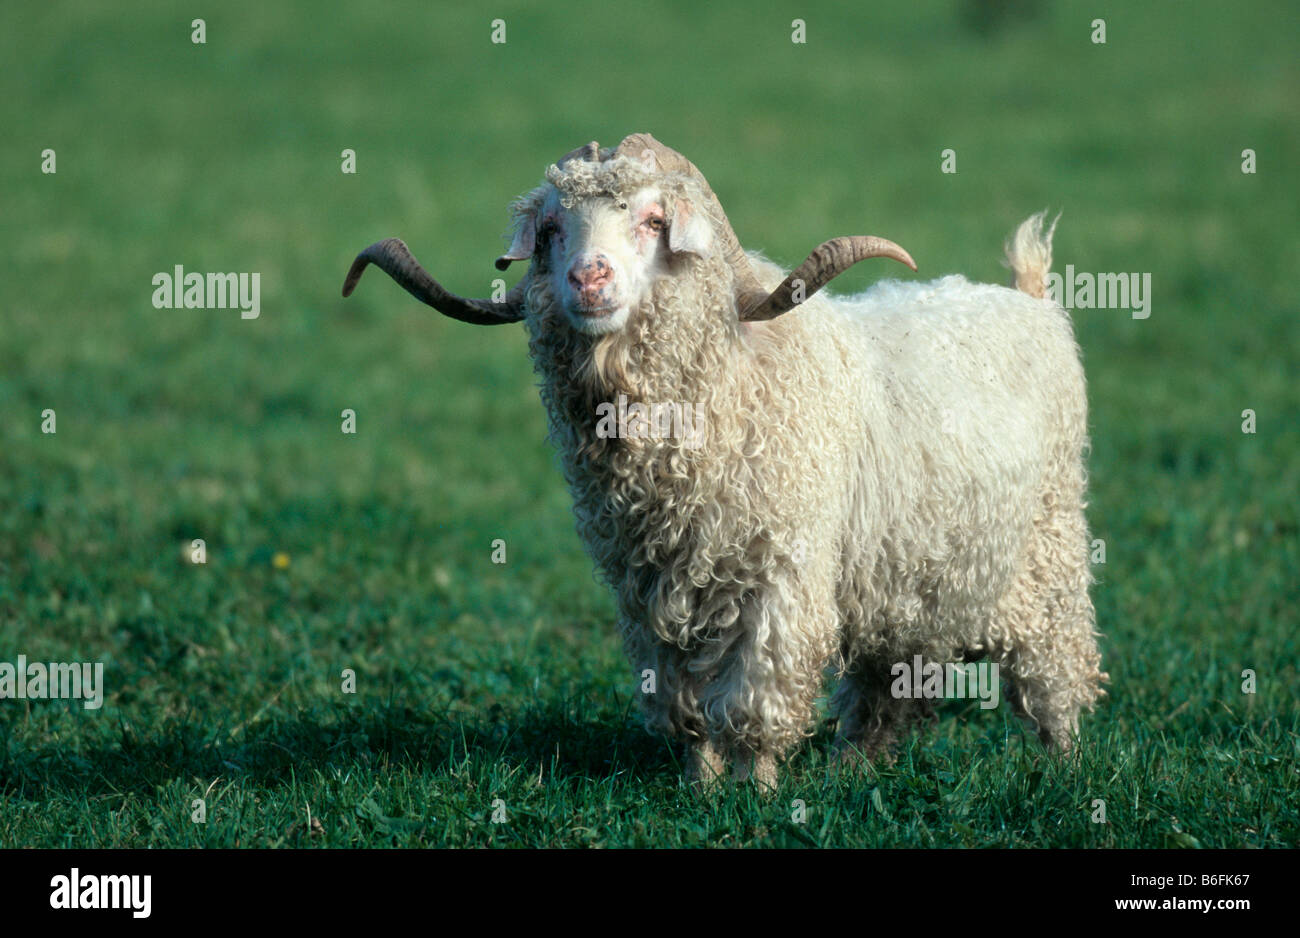 1dd40b95f8a0 Chèvre Angora ou Mohair Banque D Images, Photo Stock  21242655 - Alamy